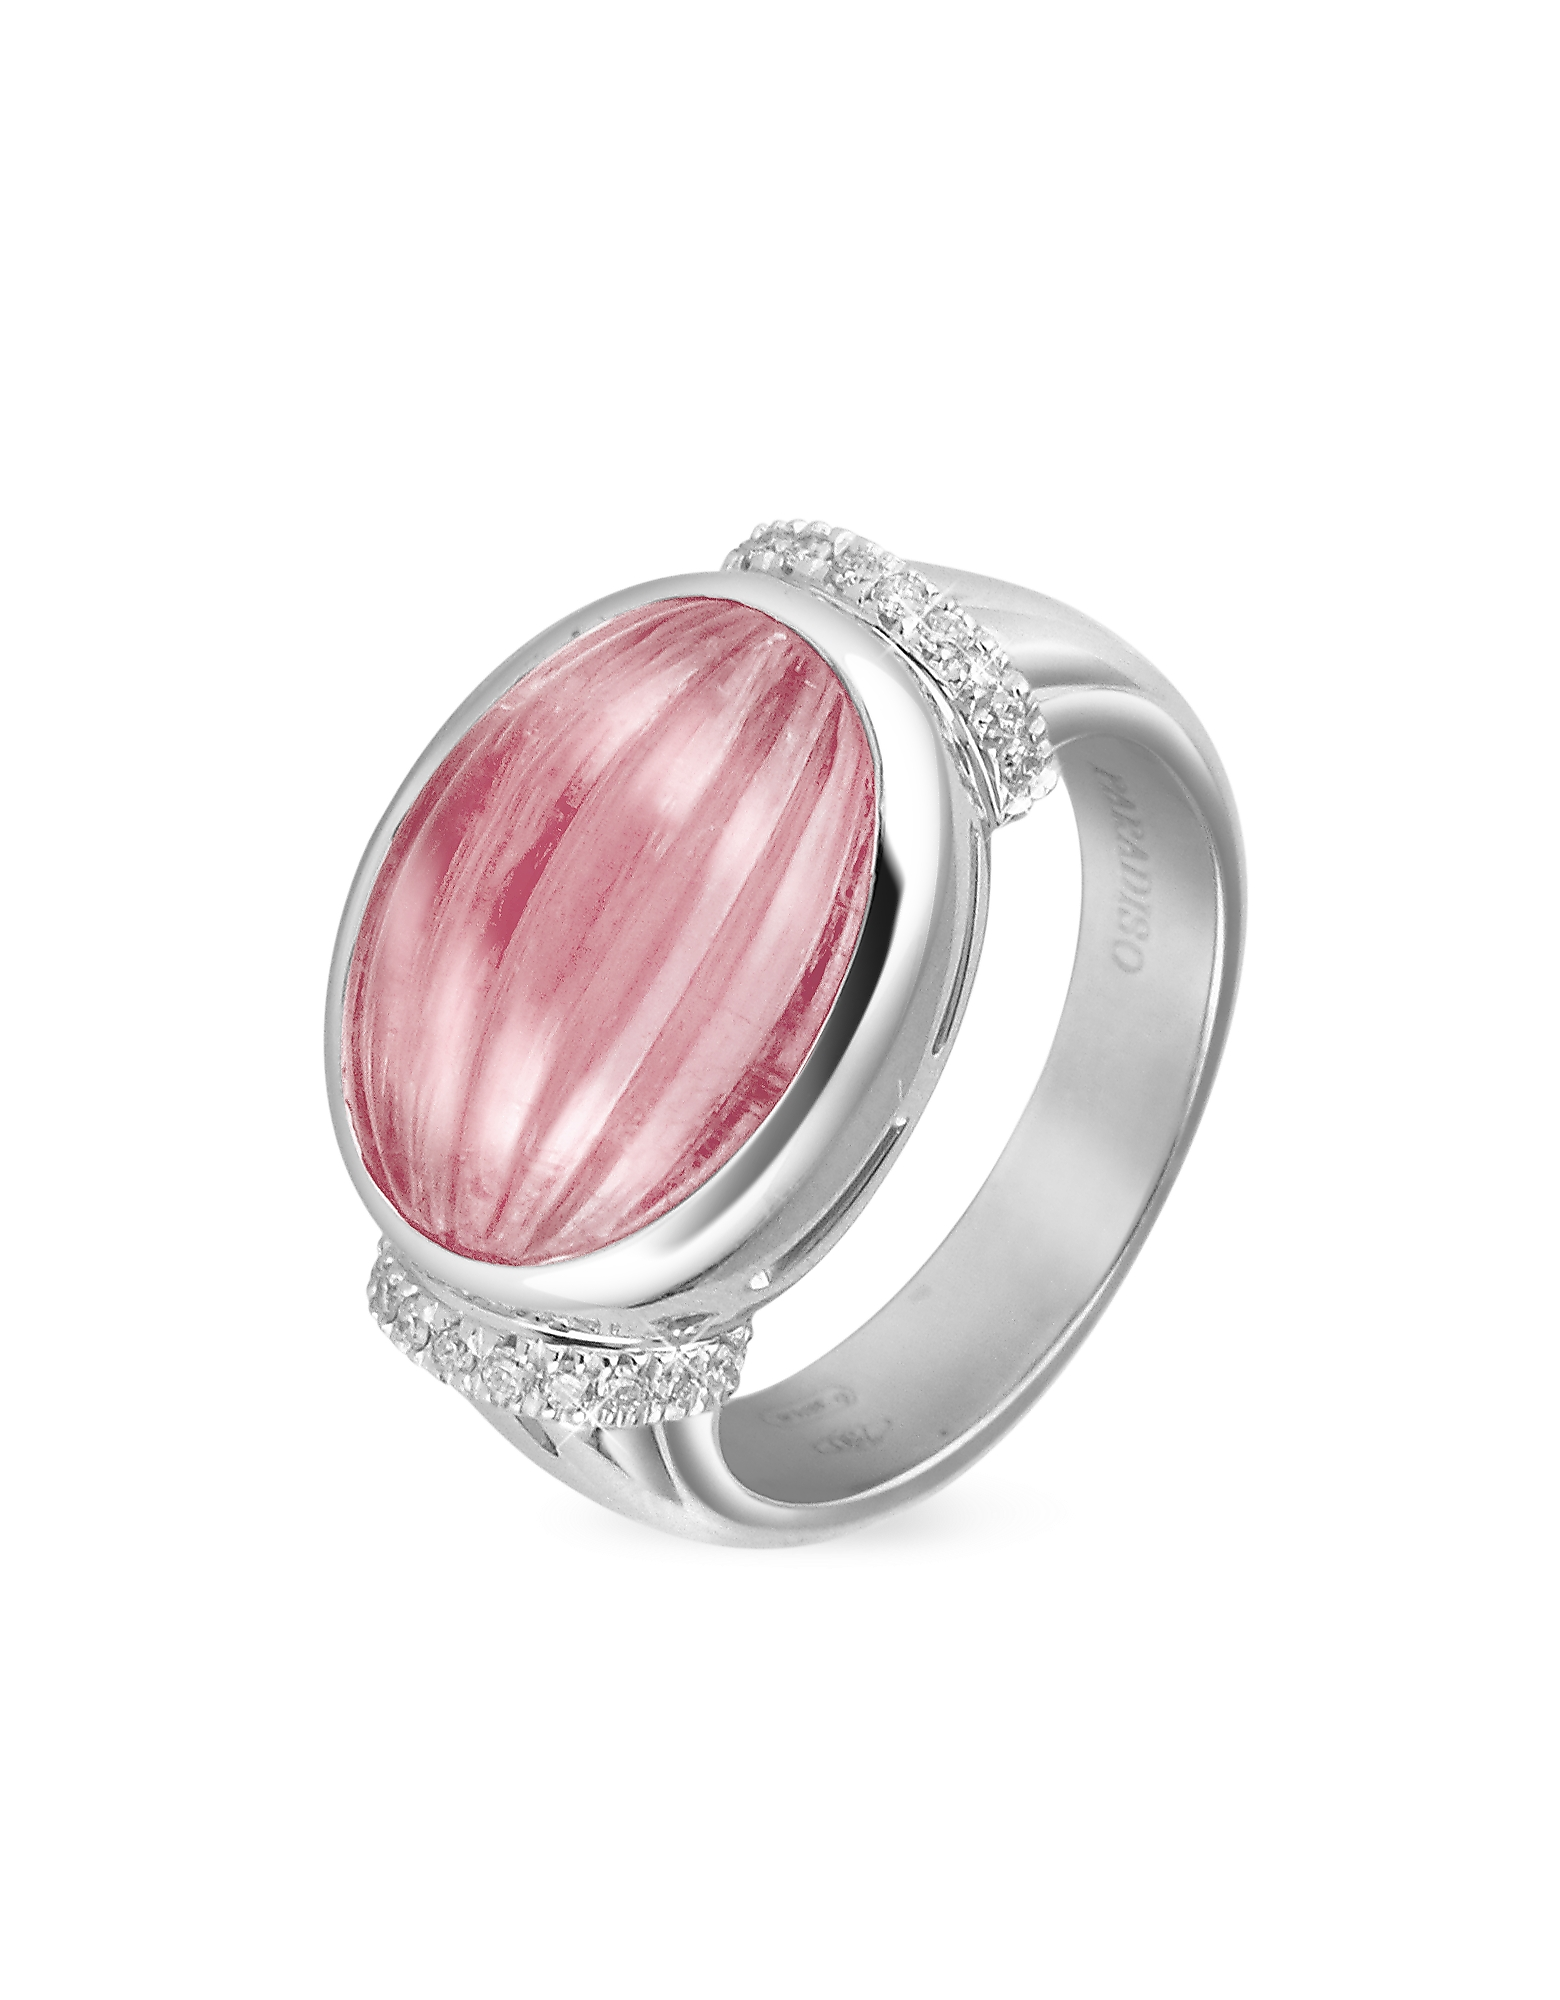 Roma Imperiale Rings, Carved Pink Rubellith and Diamond 18K Gold Ring